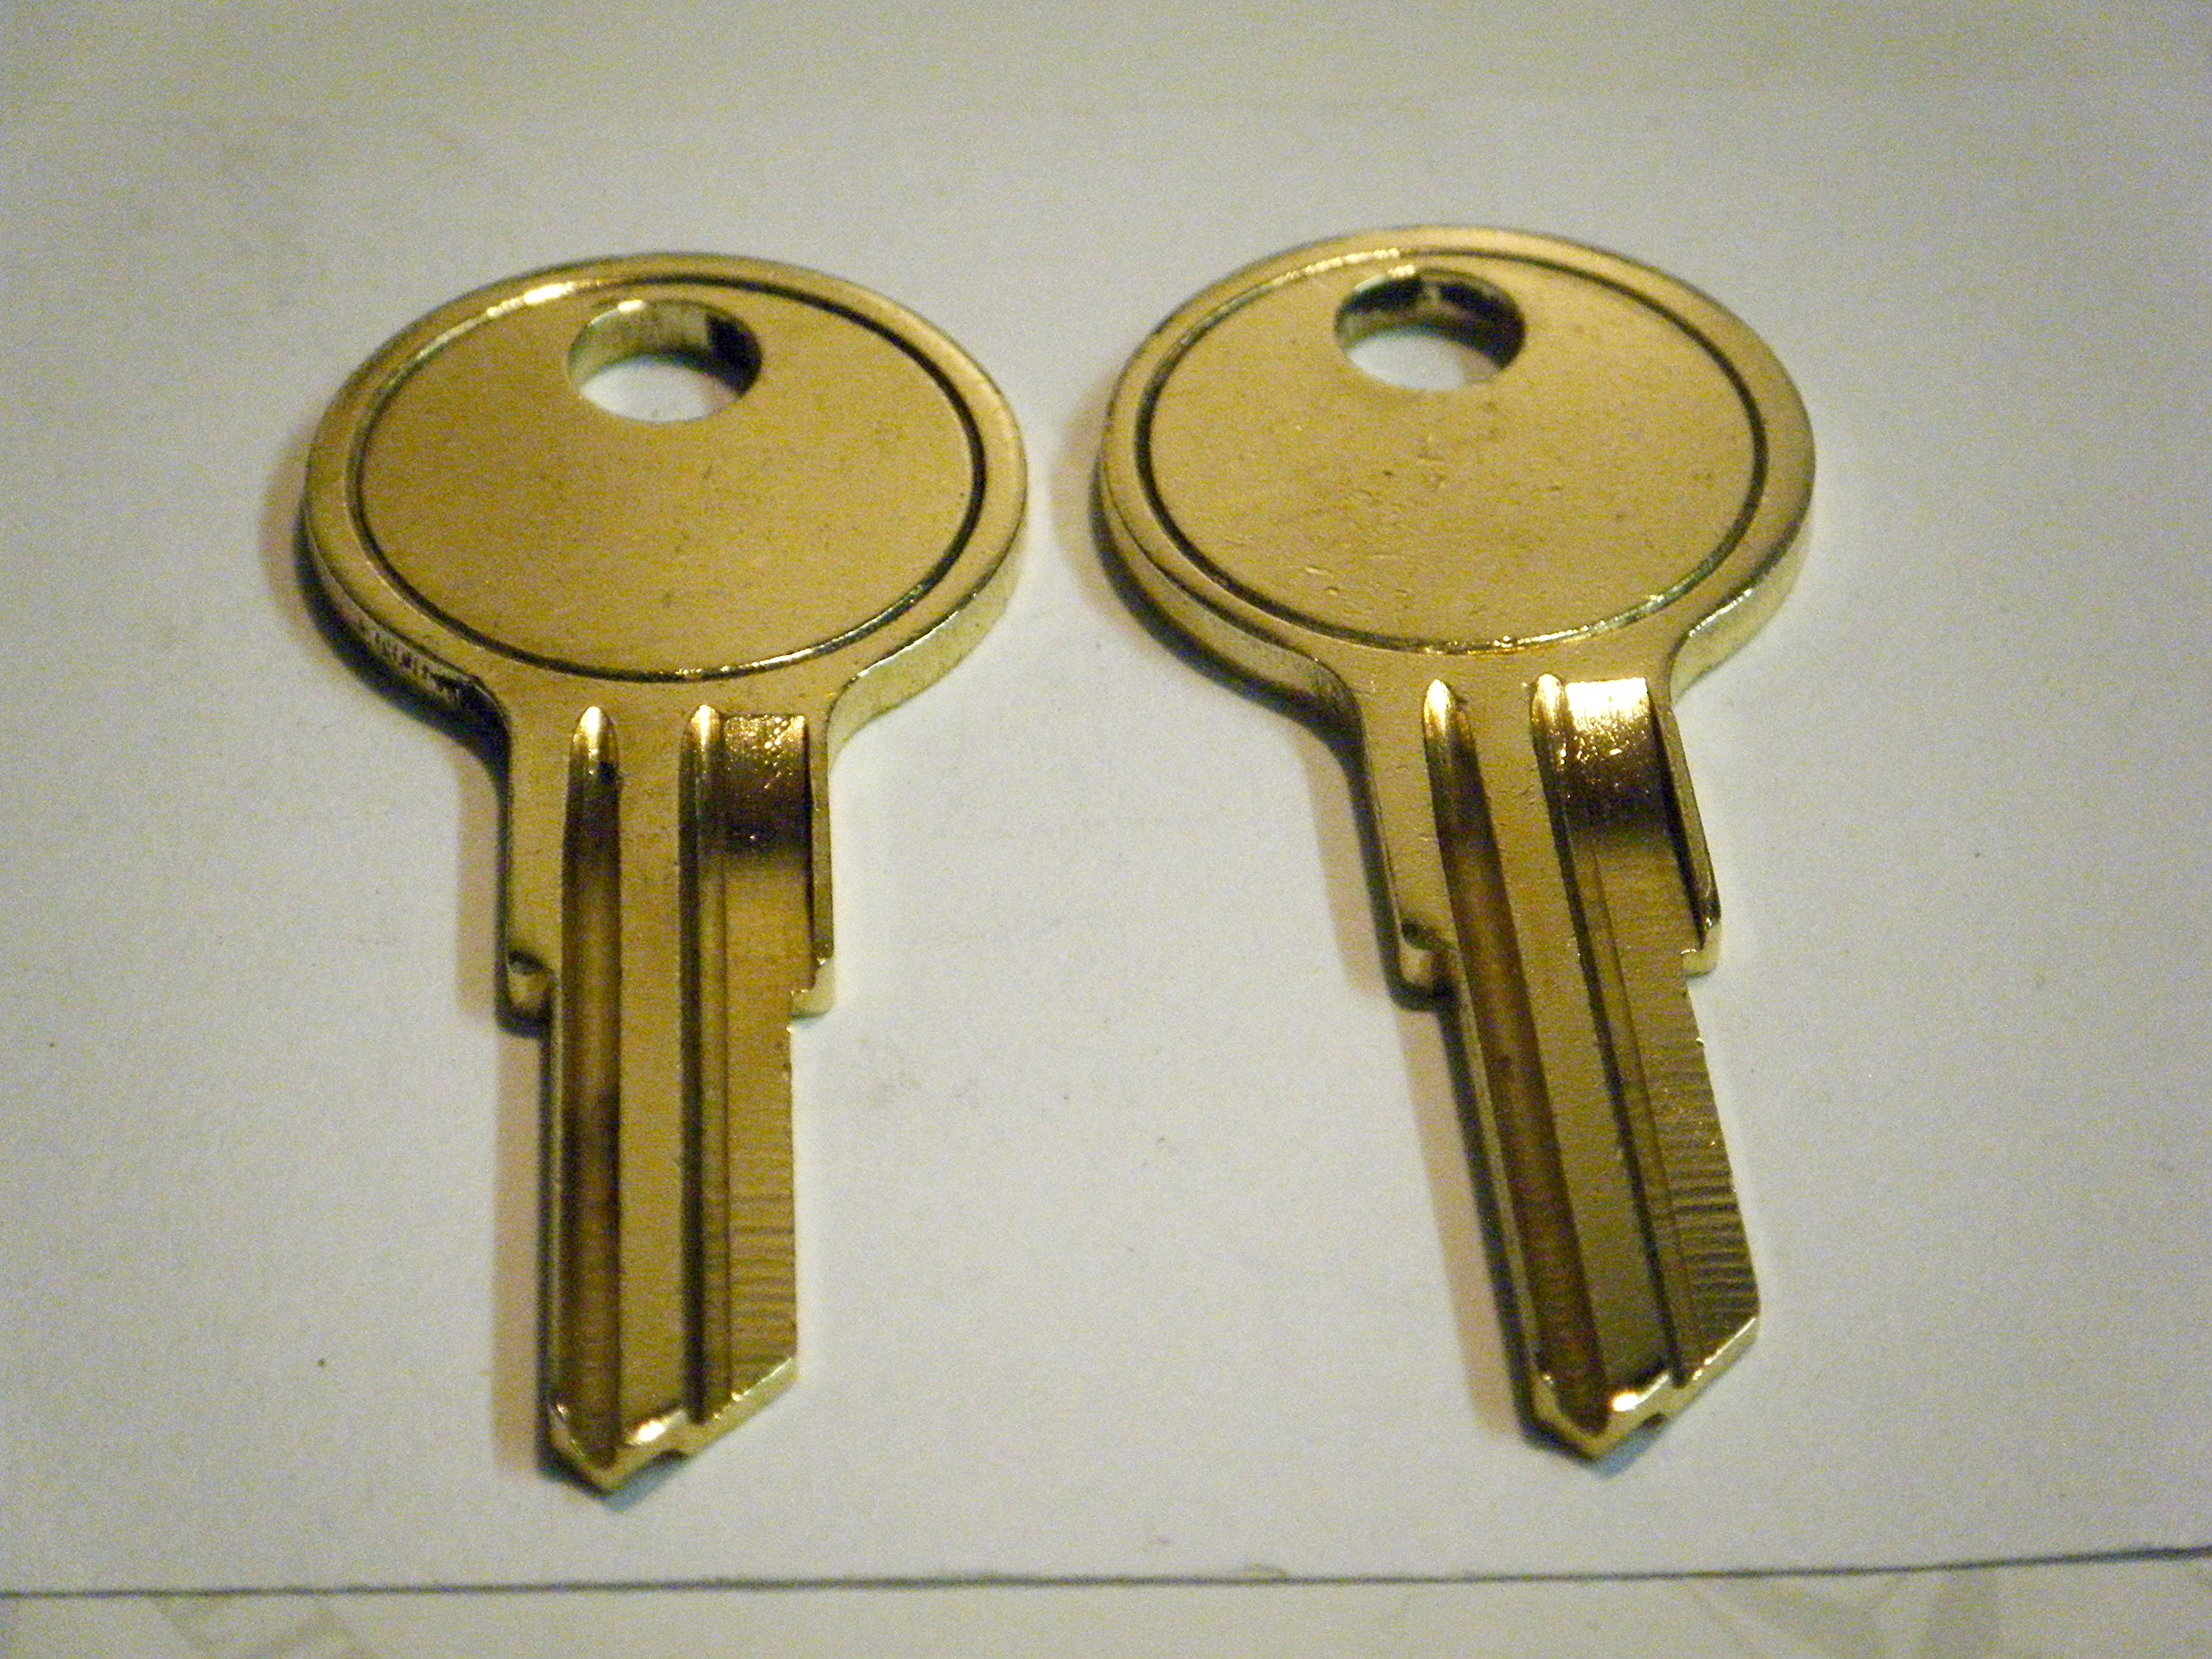 UWS ONLY UWS Toolbox Keys Code Cut Lock/Key Numbers From CH501 To CH510 Truck Tool Box Lock Key By Ordering These Keys You Are Stating You Are The Owner. (CH504)